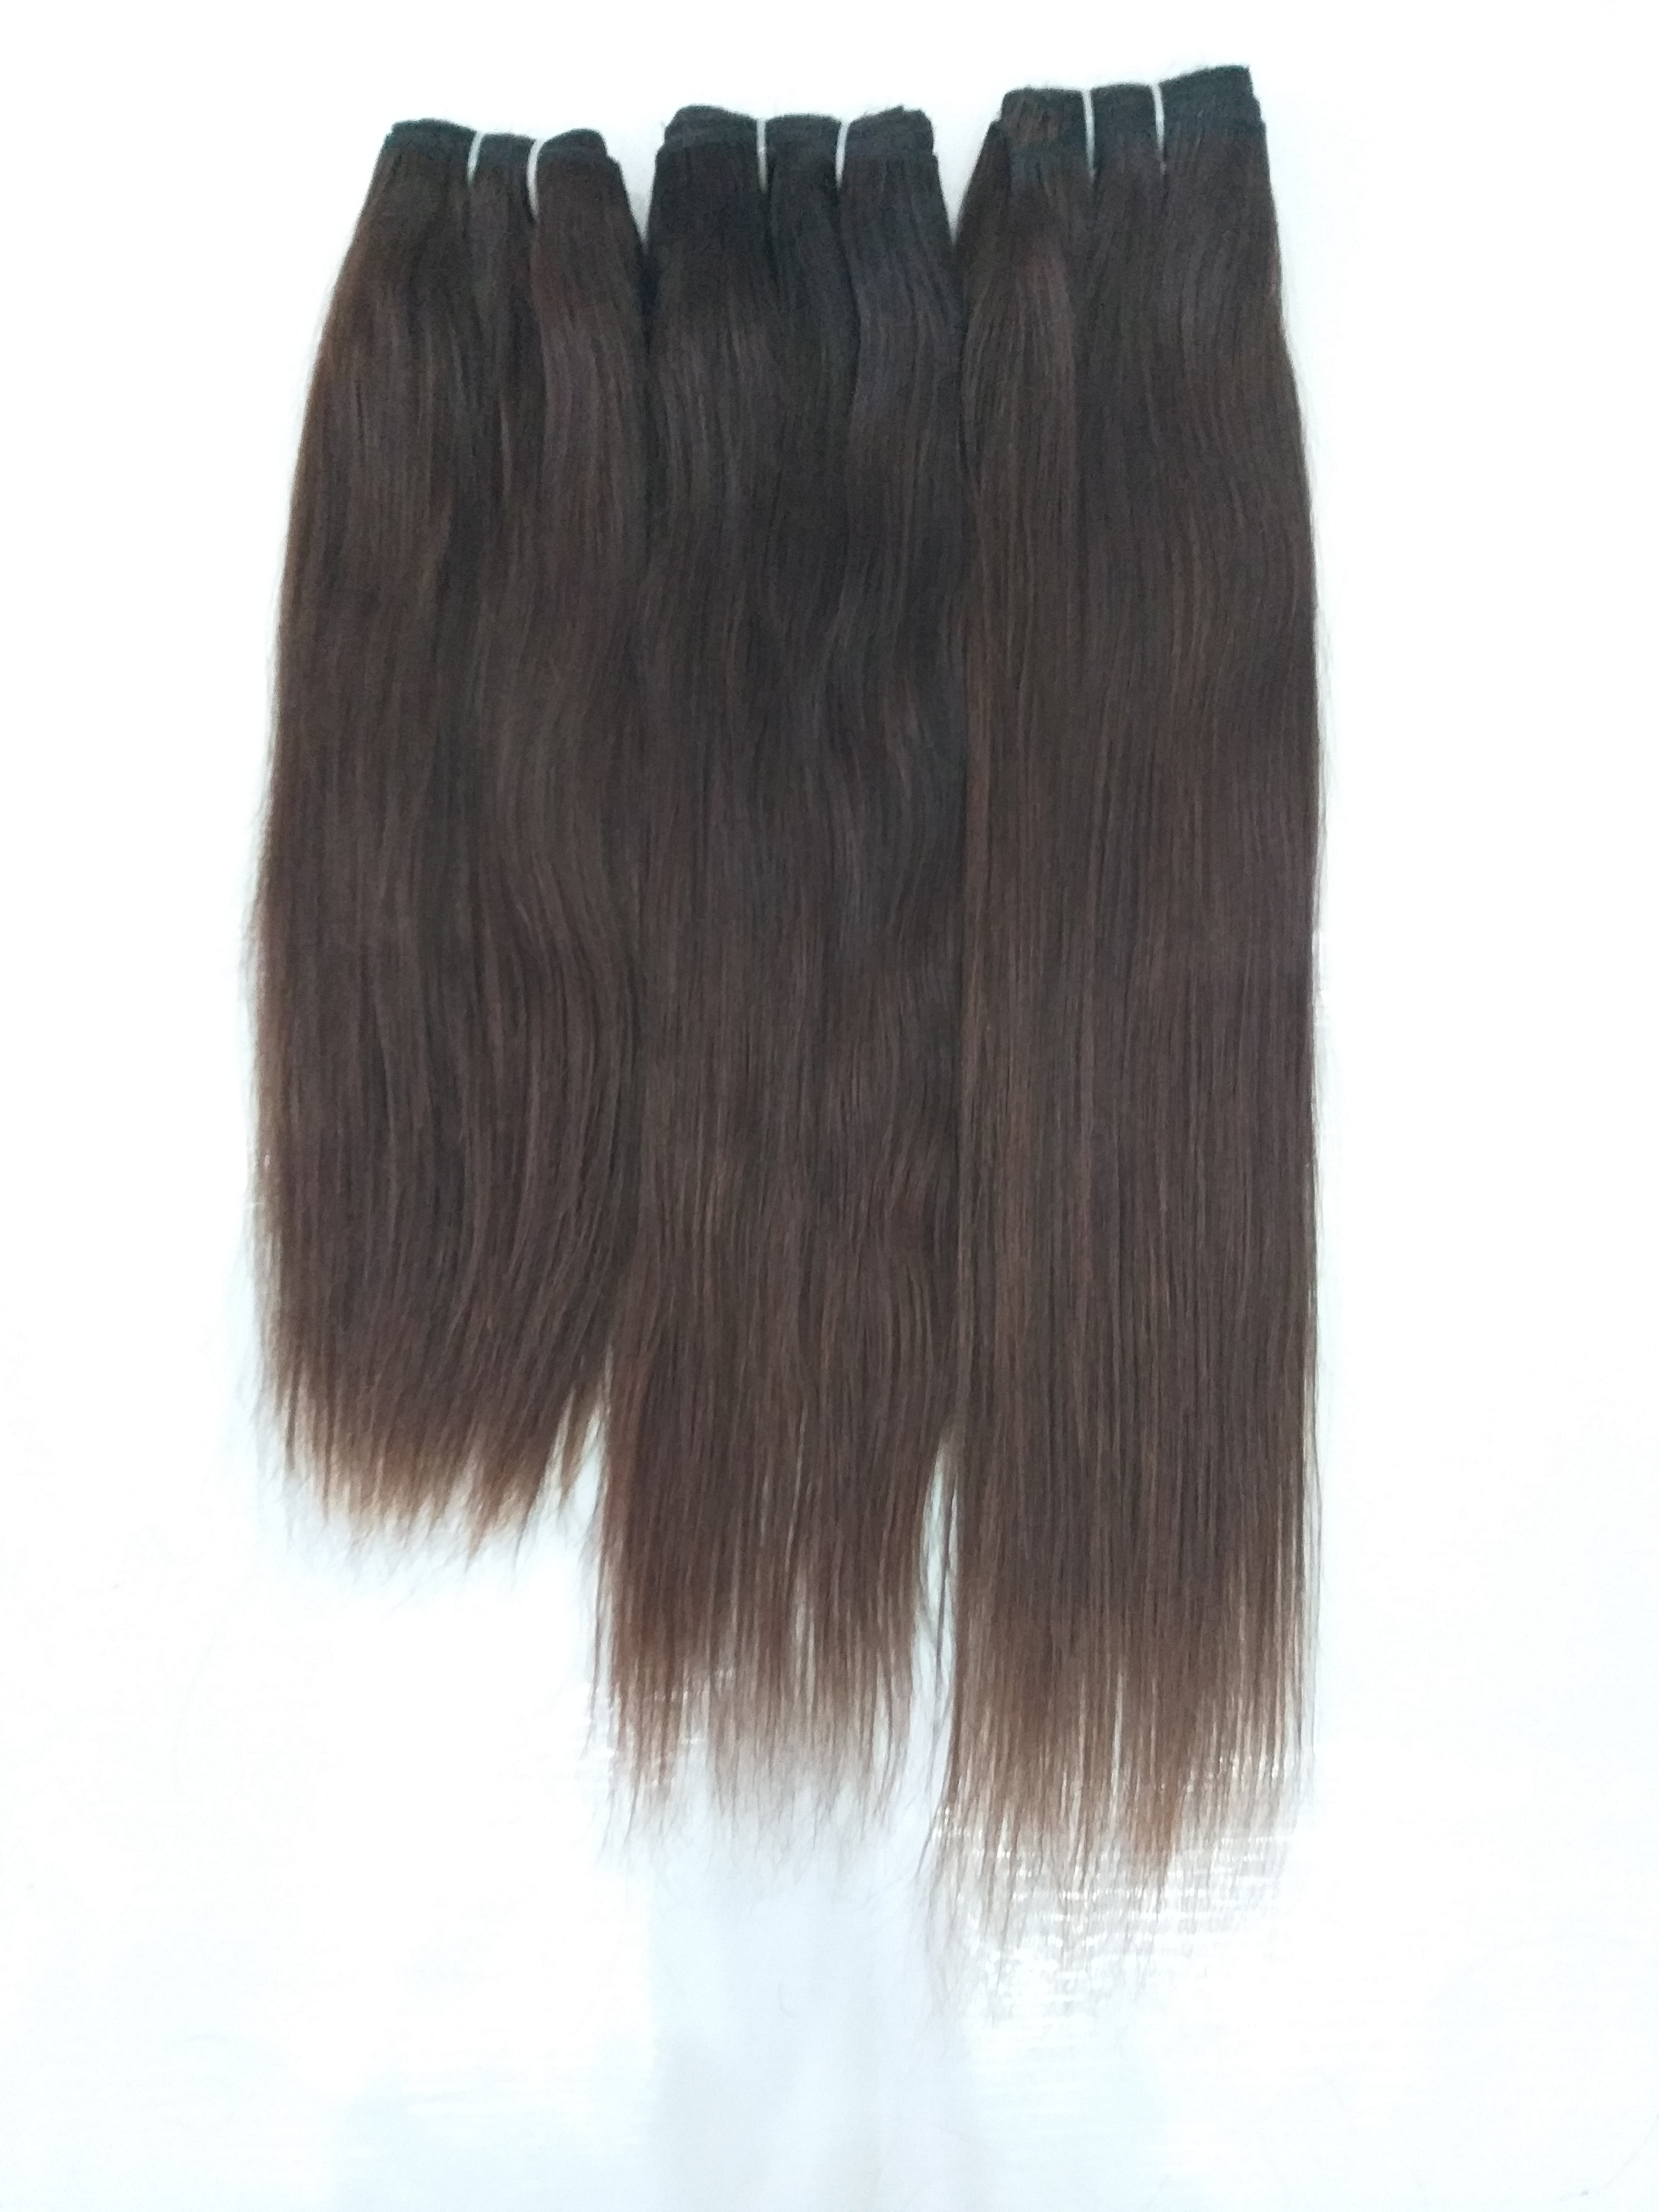 Straight Human Hair Weaves, Unprocessed  Human Hair Extensions